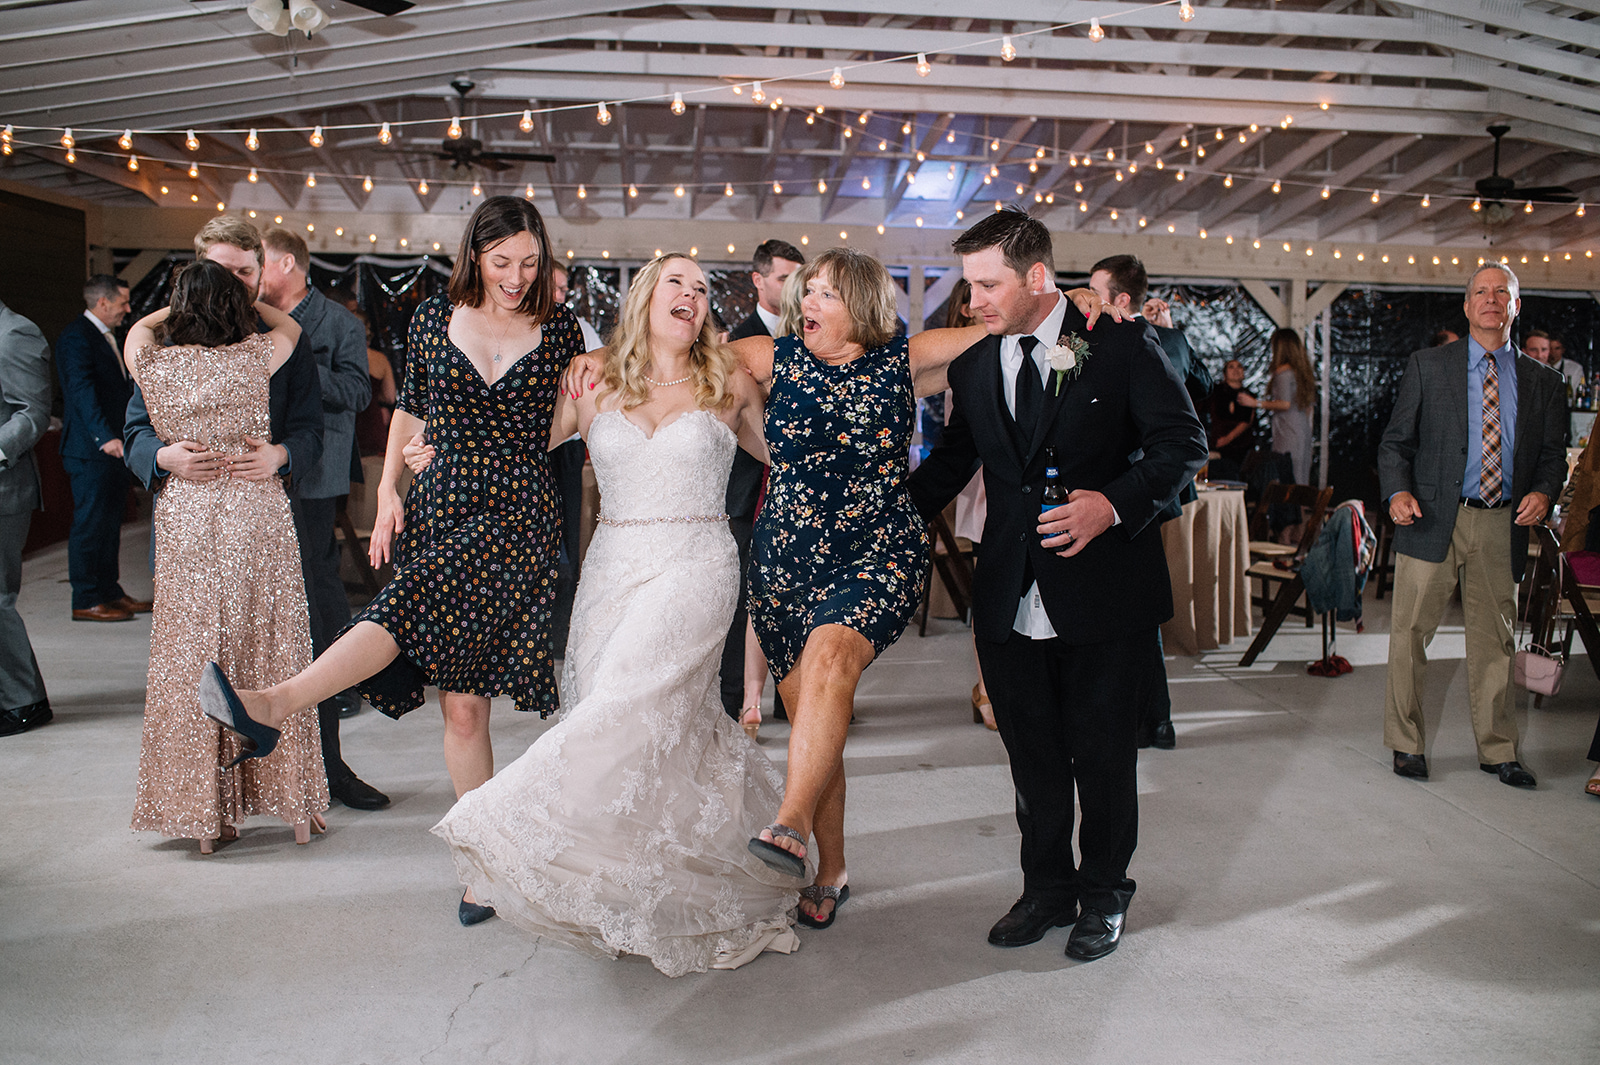 Bea_ThomasWedding2018 01563.jpg